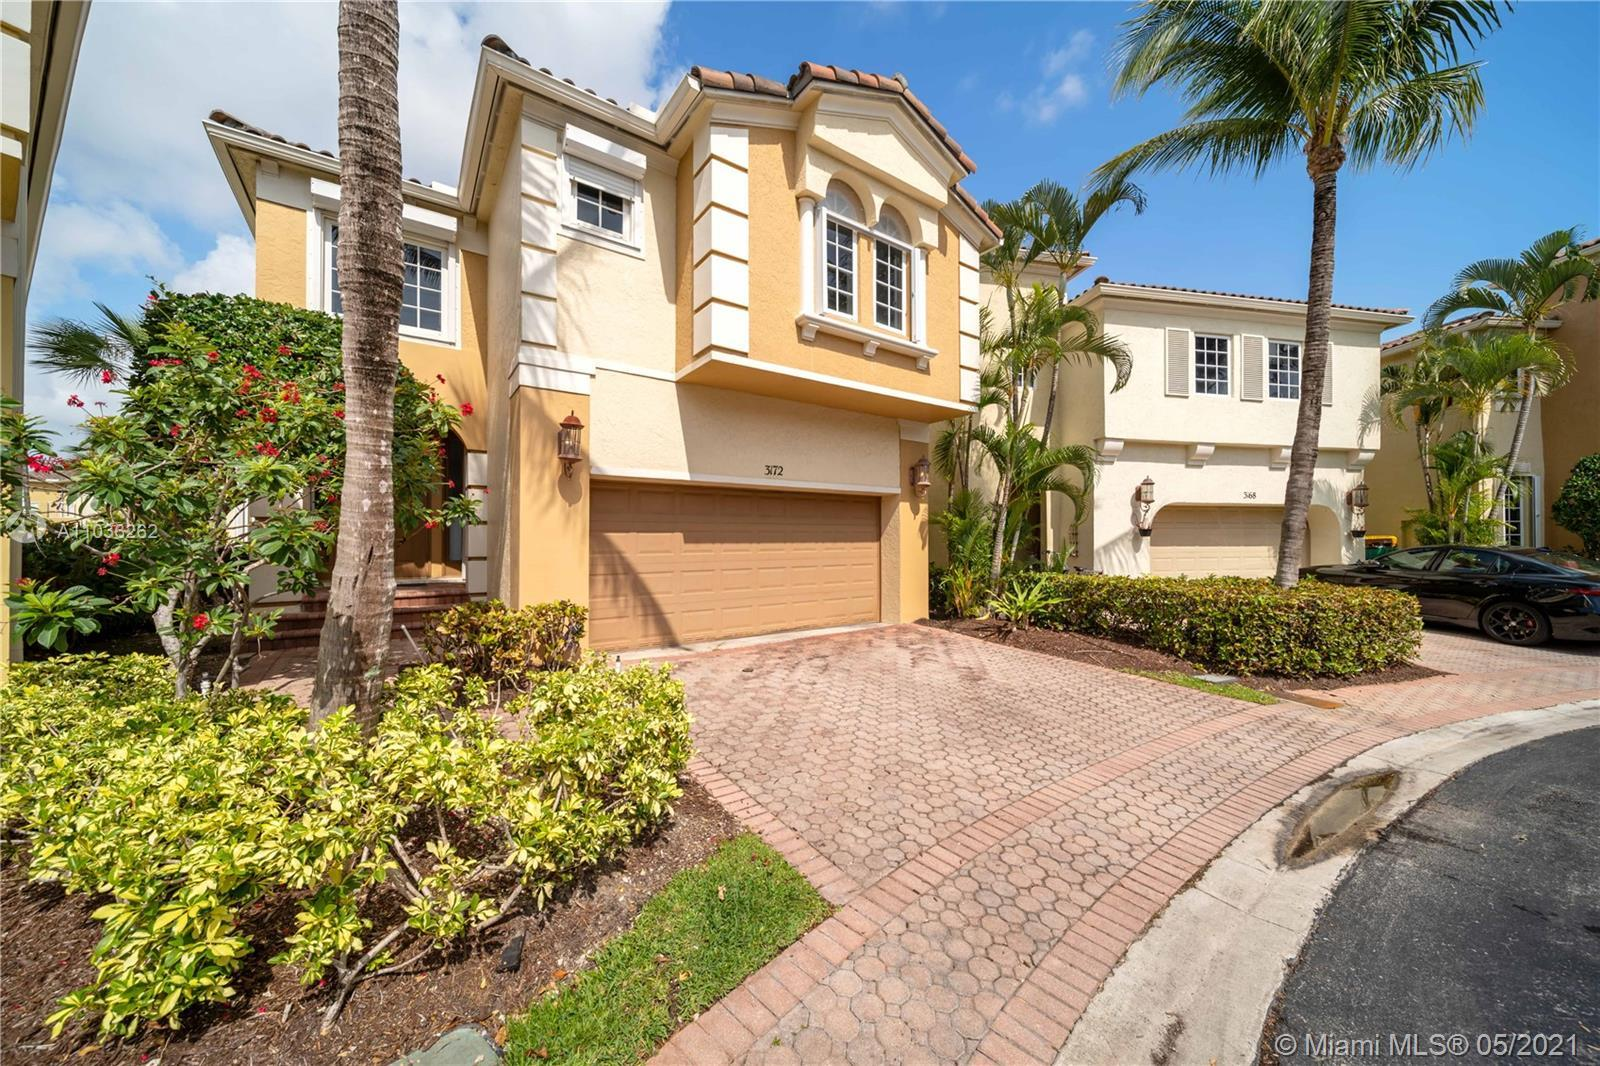 Amazing house in Aventura Lakes, 2,540 SF of living area, 3 Beds + 3 Full Baths and a Half Bath, mod